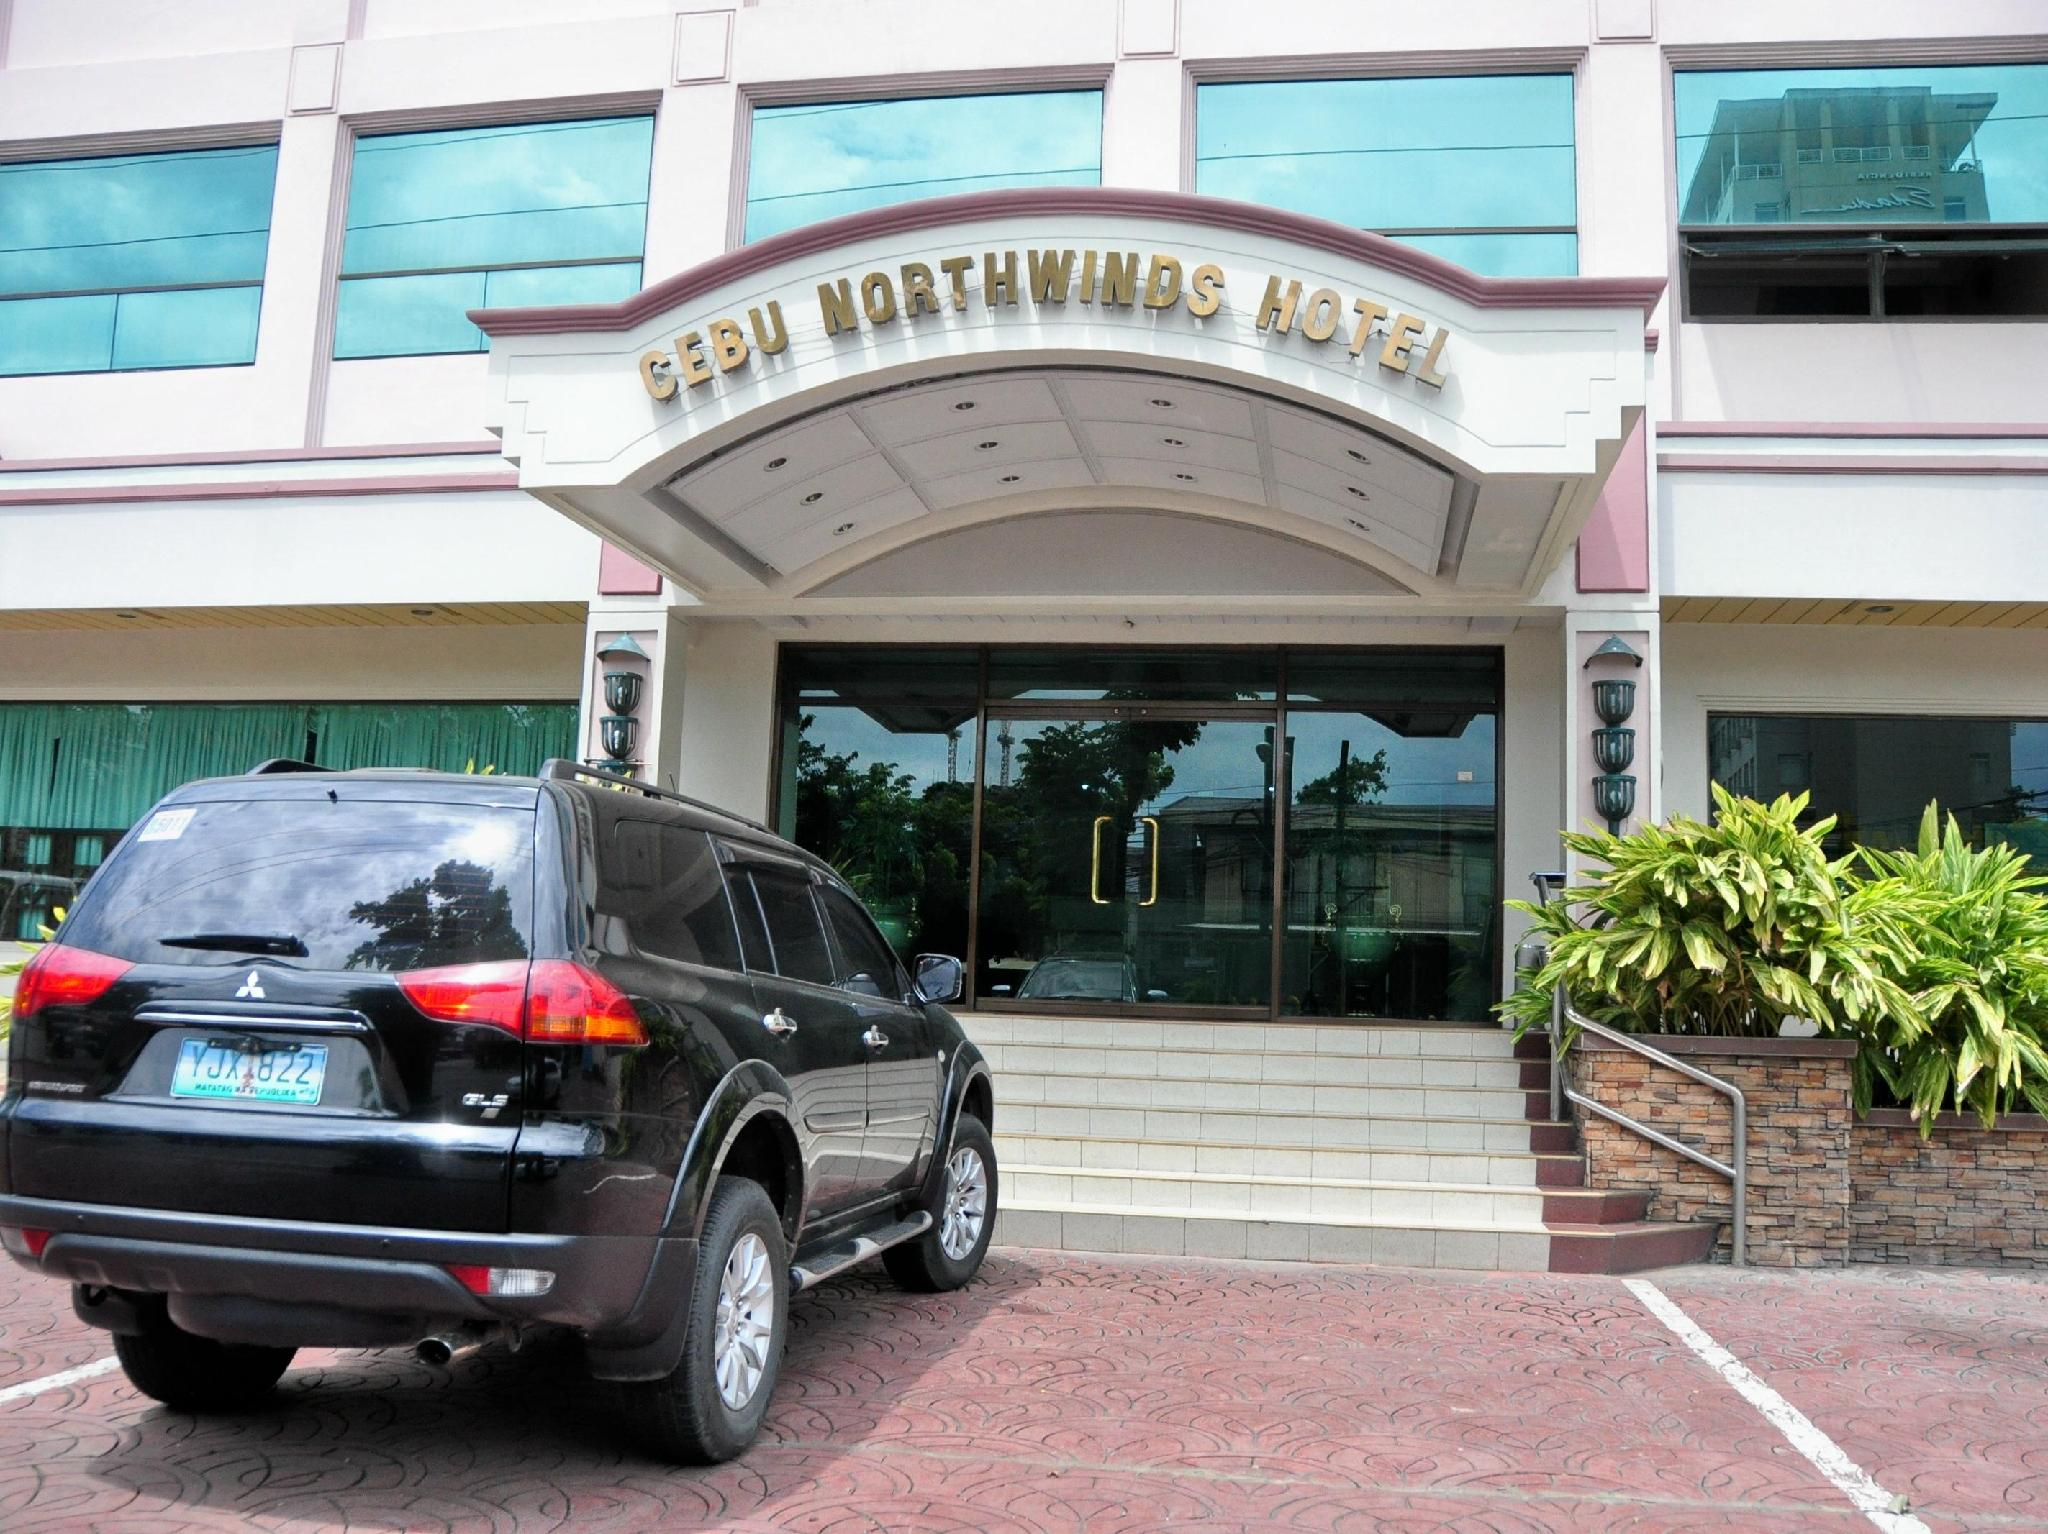 Cebu Northwinds Hotel 세부